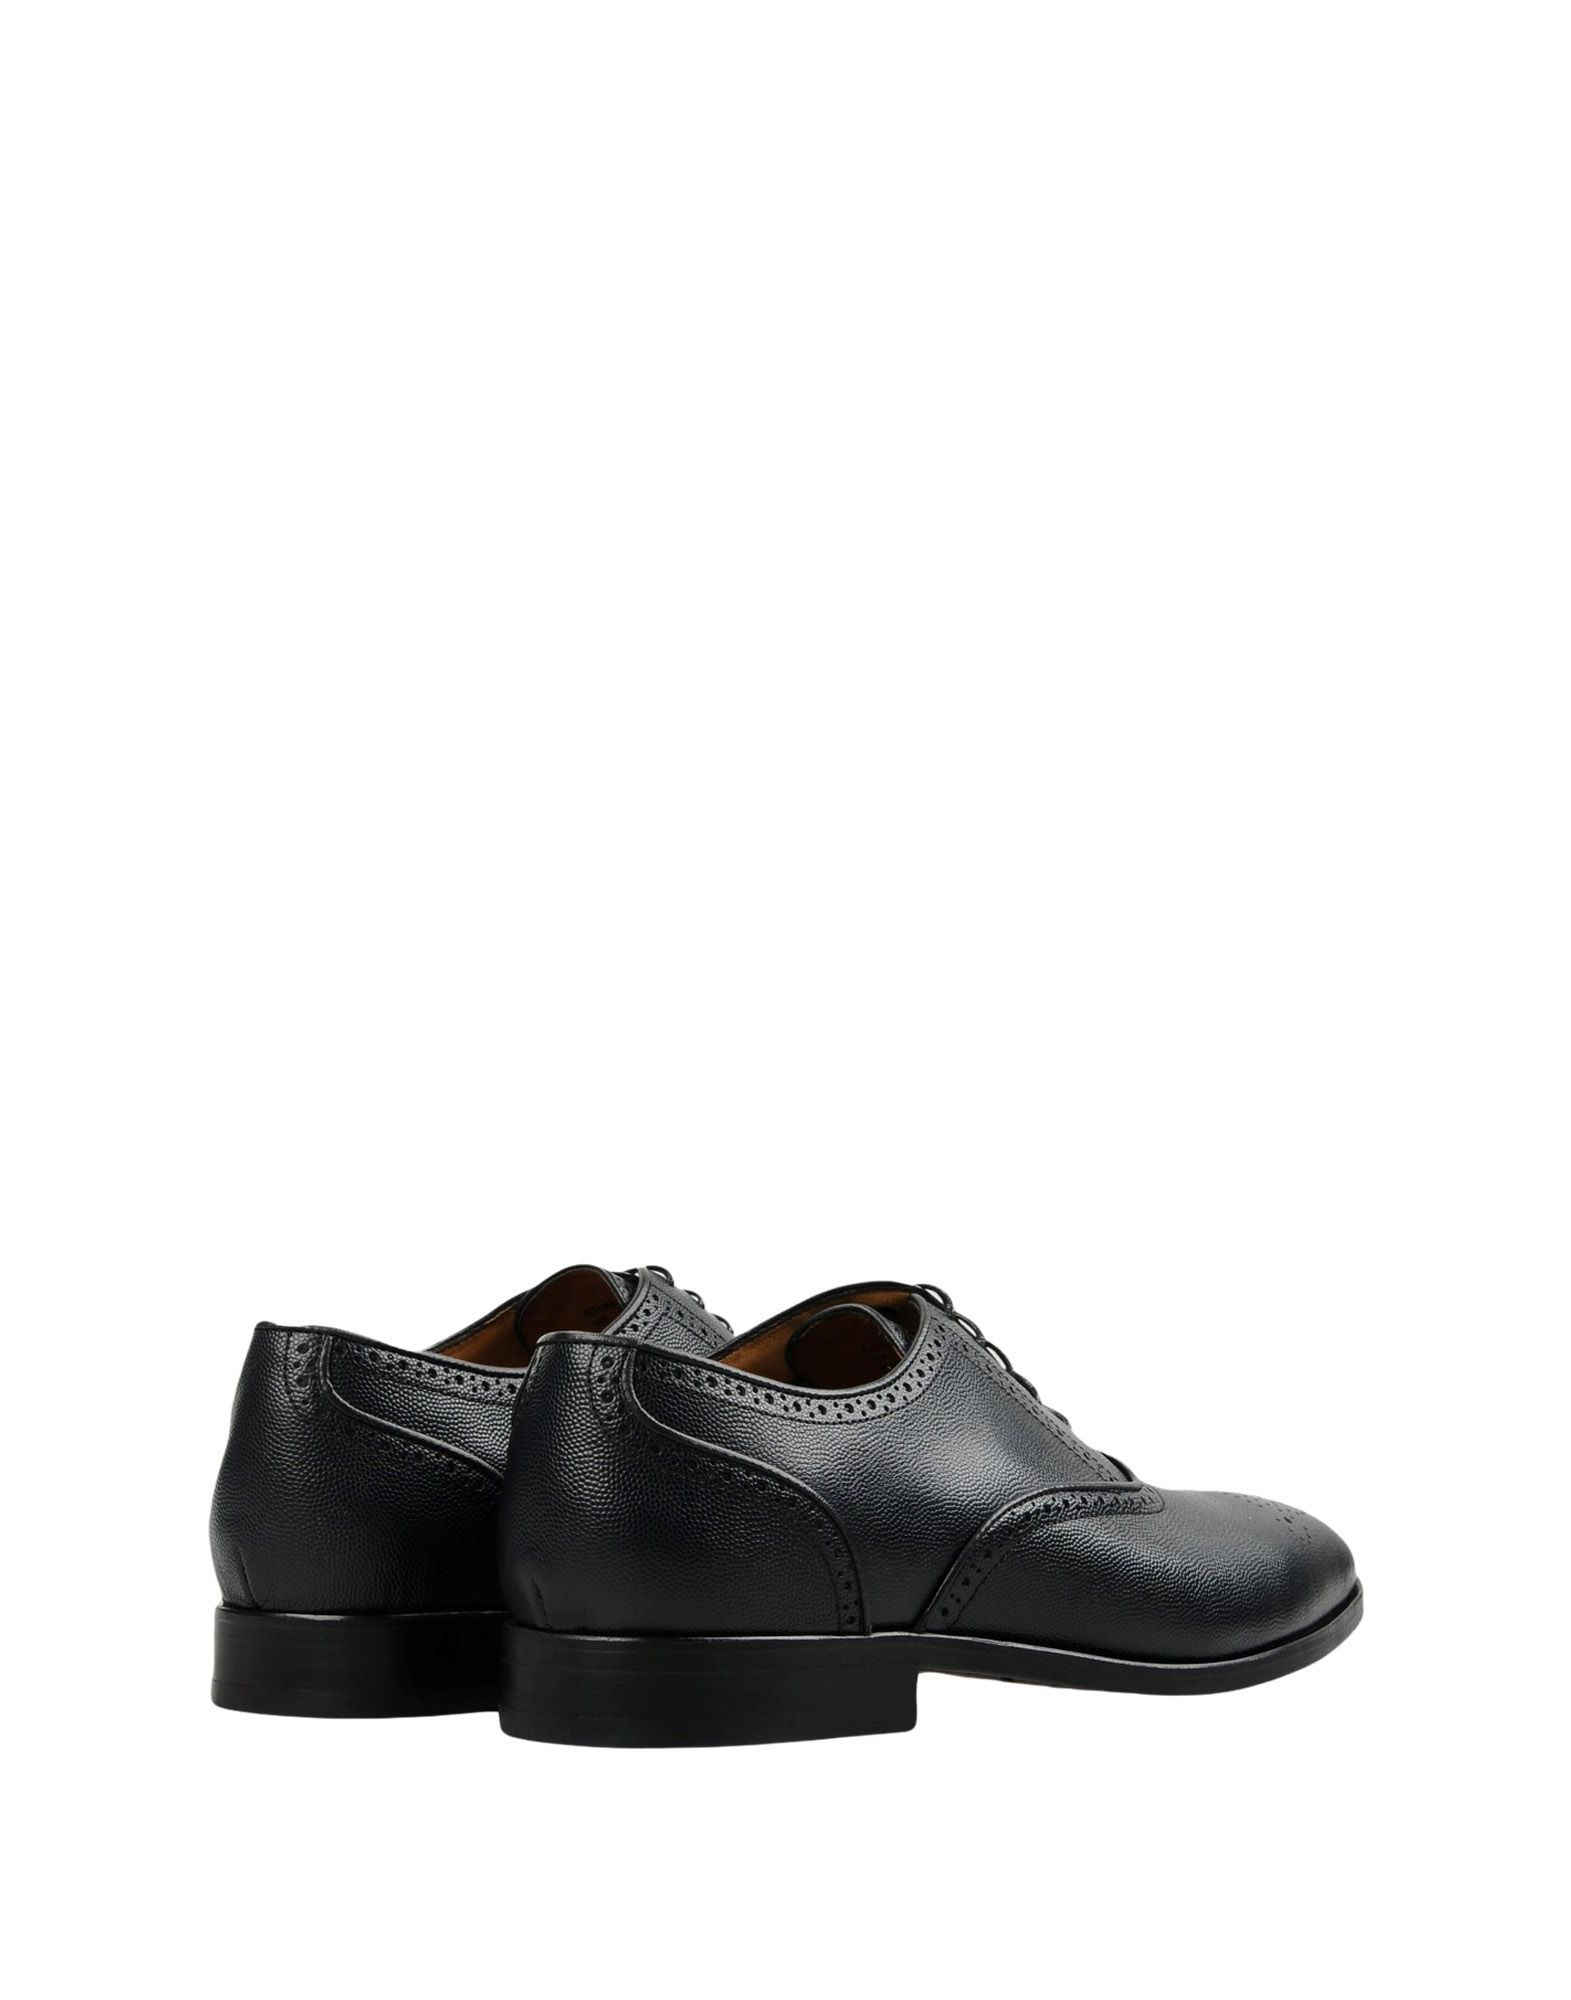 Chaussures À Lacets Ps By Paul Smith Mens Shoe Gilbert Bla - Homme - Chaussures À Lacets Ps By Paul Smith sur